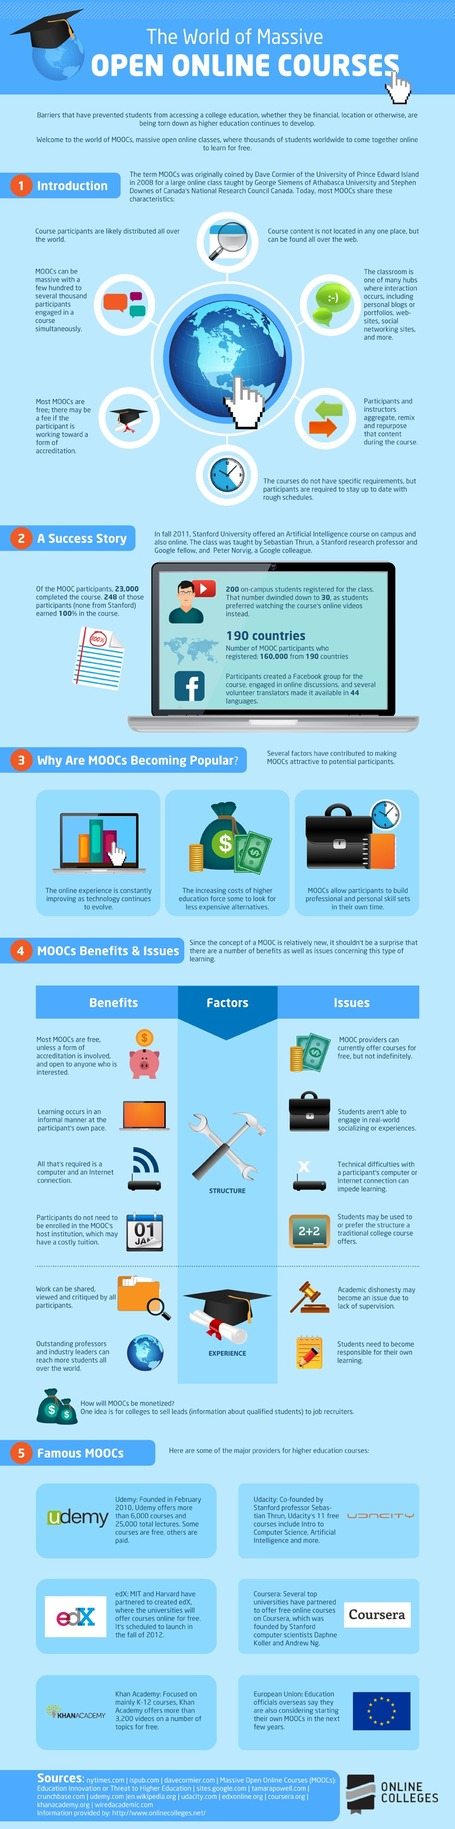 The World of Massive Open Online Courses [Infographic] | Al calor del Caribe | Scoop.it